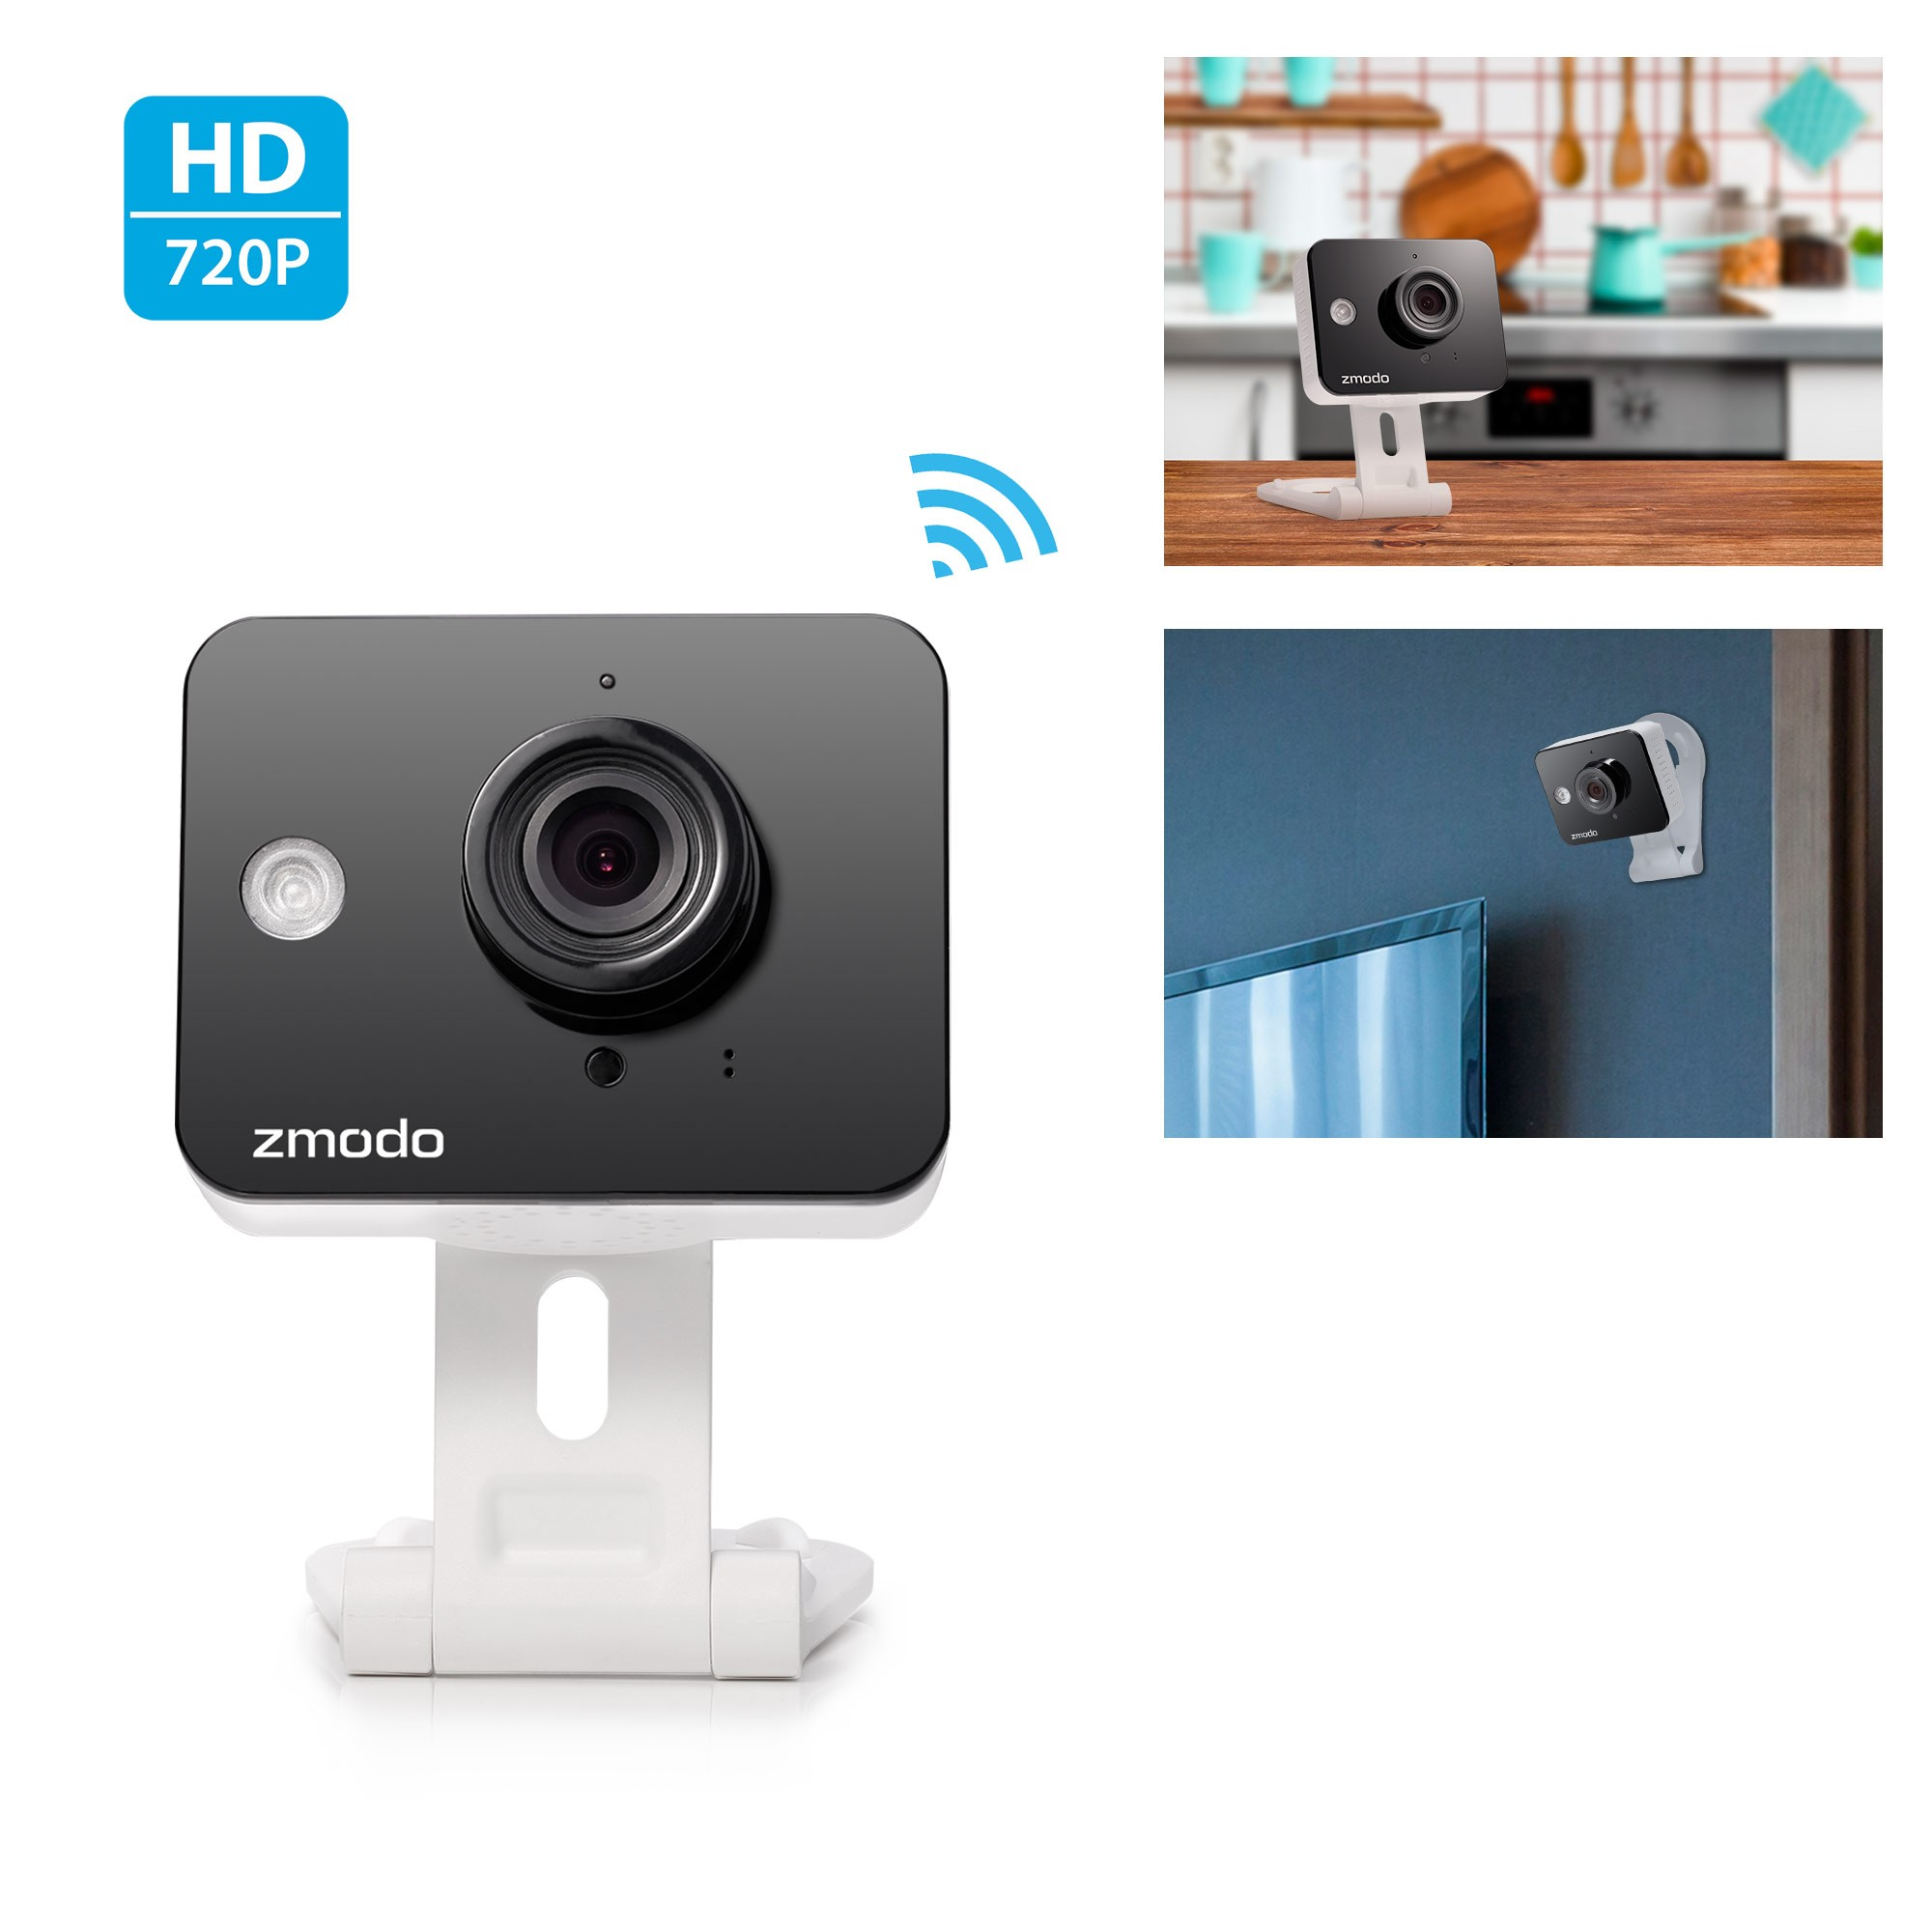 zmodo mini wifi camera. Black Bedroom Furniture Sets. Home Design Ideas